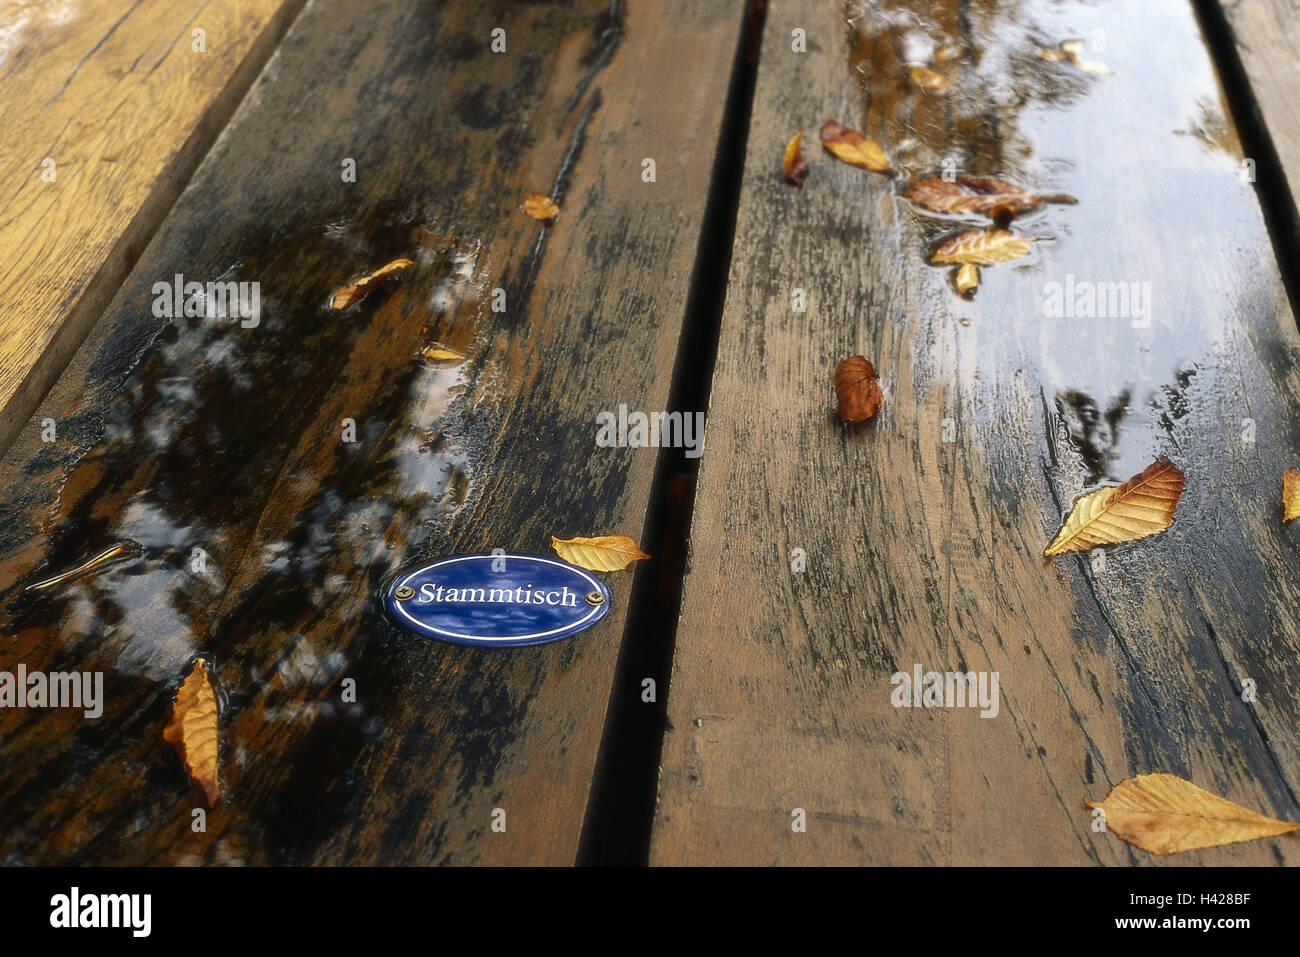 Beer garden, wood table, wet, detail,  Sign, group of regulars, fall foliage,   Table, wood surface, wood, sign, - Stock Image